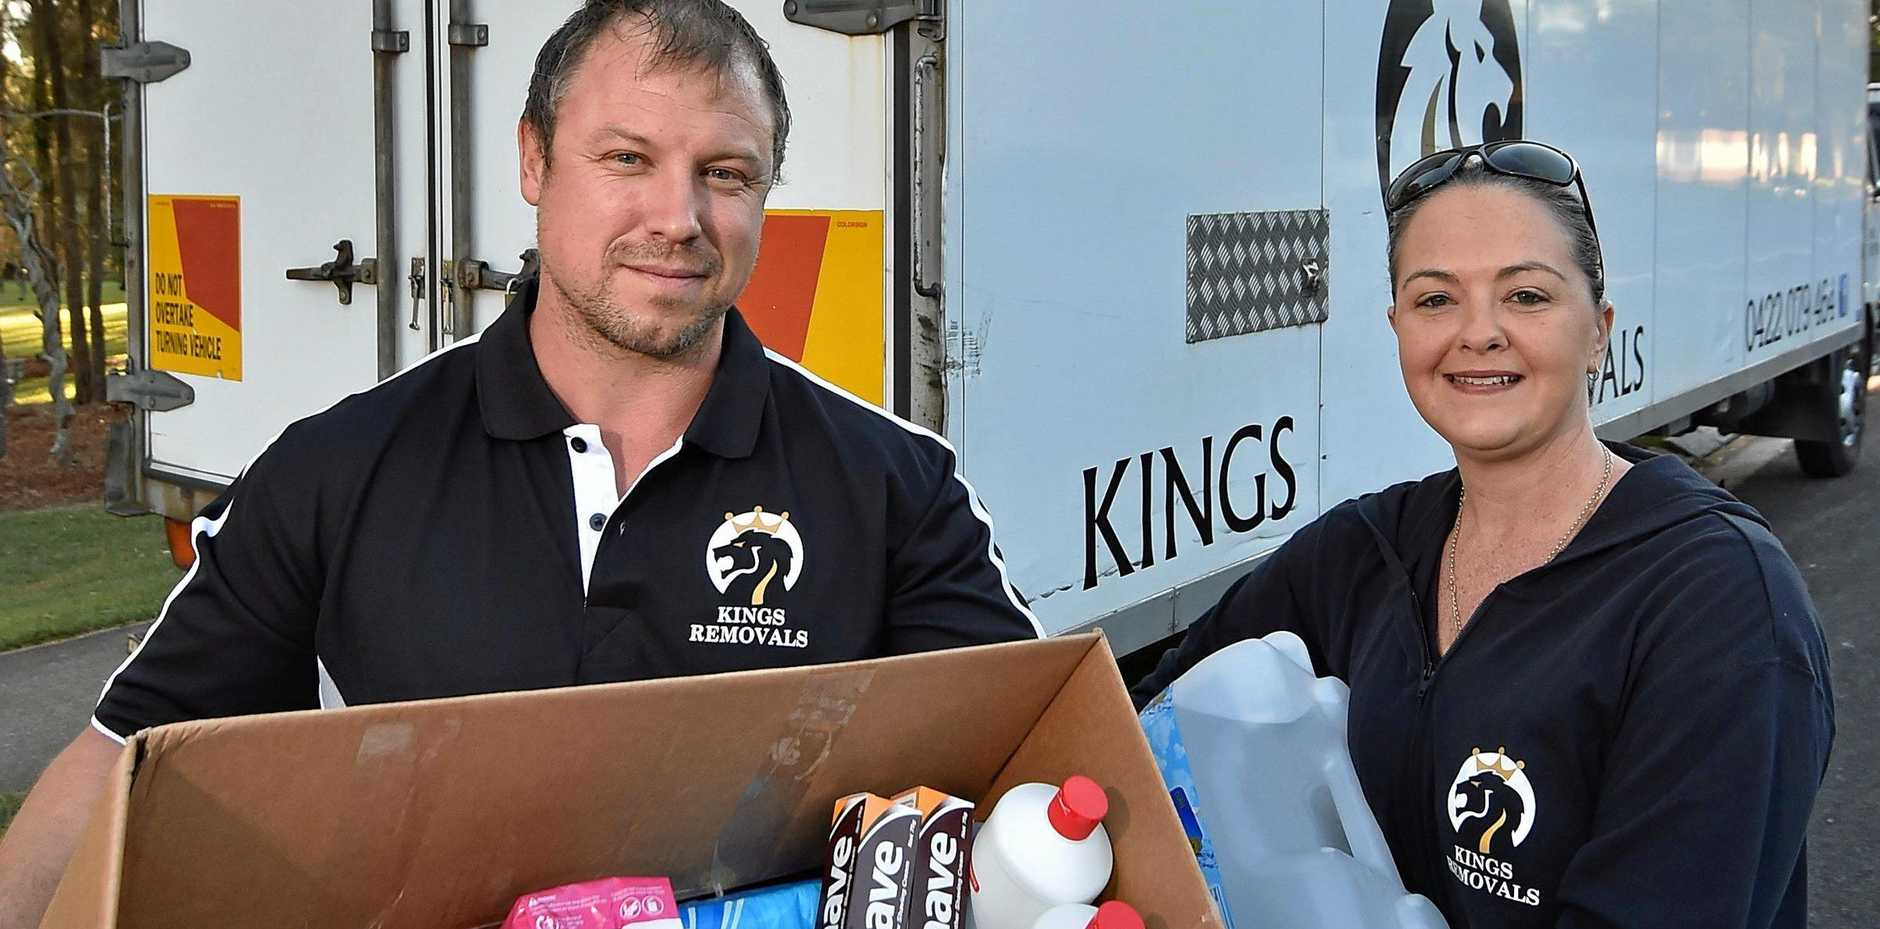 Scott Fouchard and Casey Langton owners of Kings Removals company are doing a donation run out to regional Queensland to help farmers in drought.